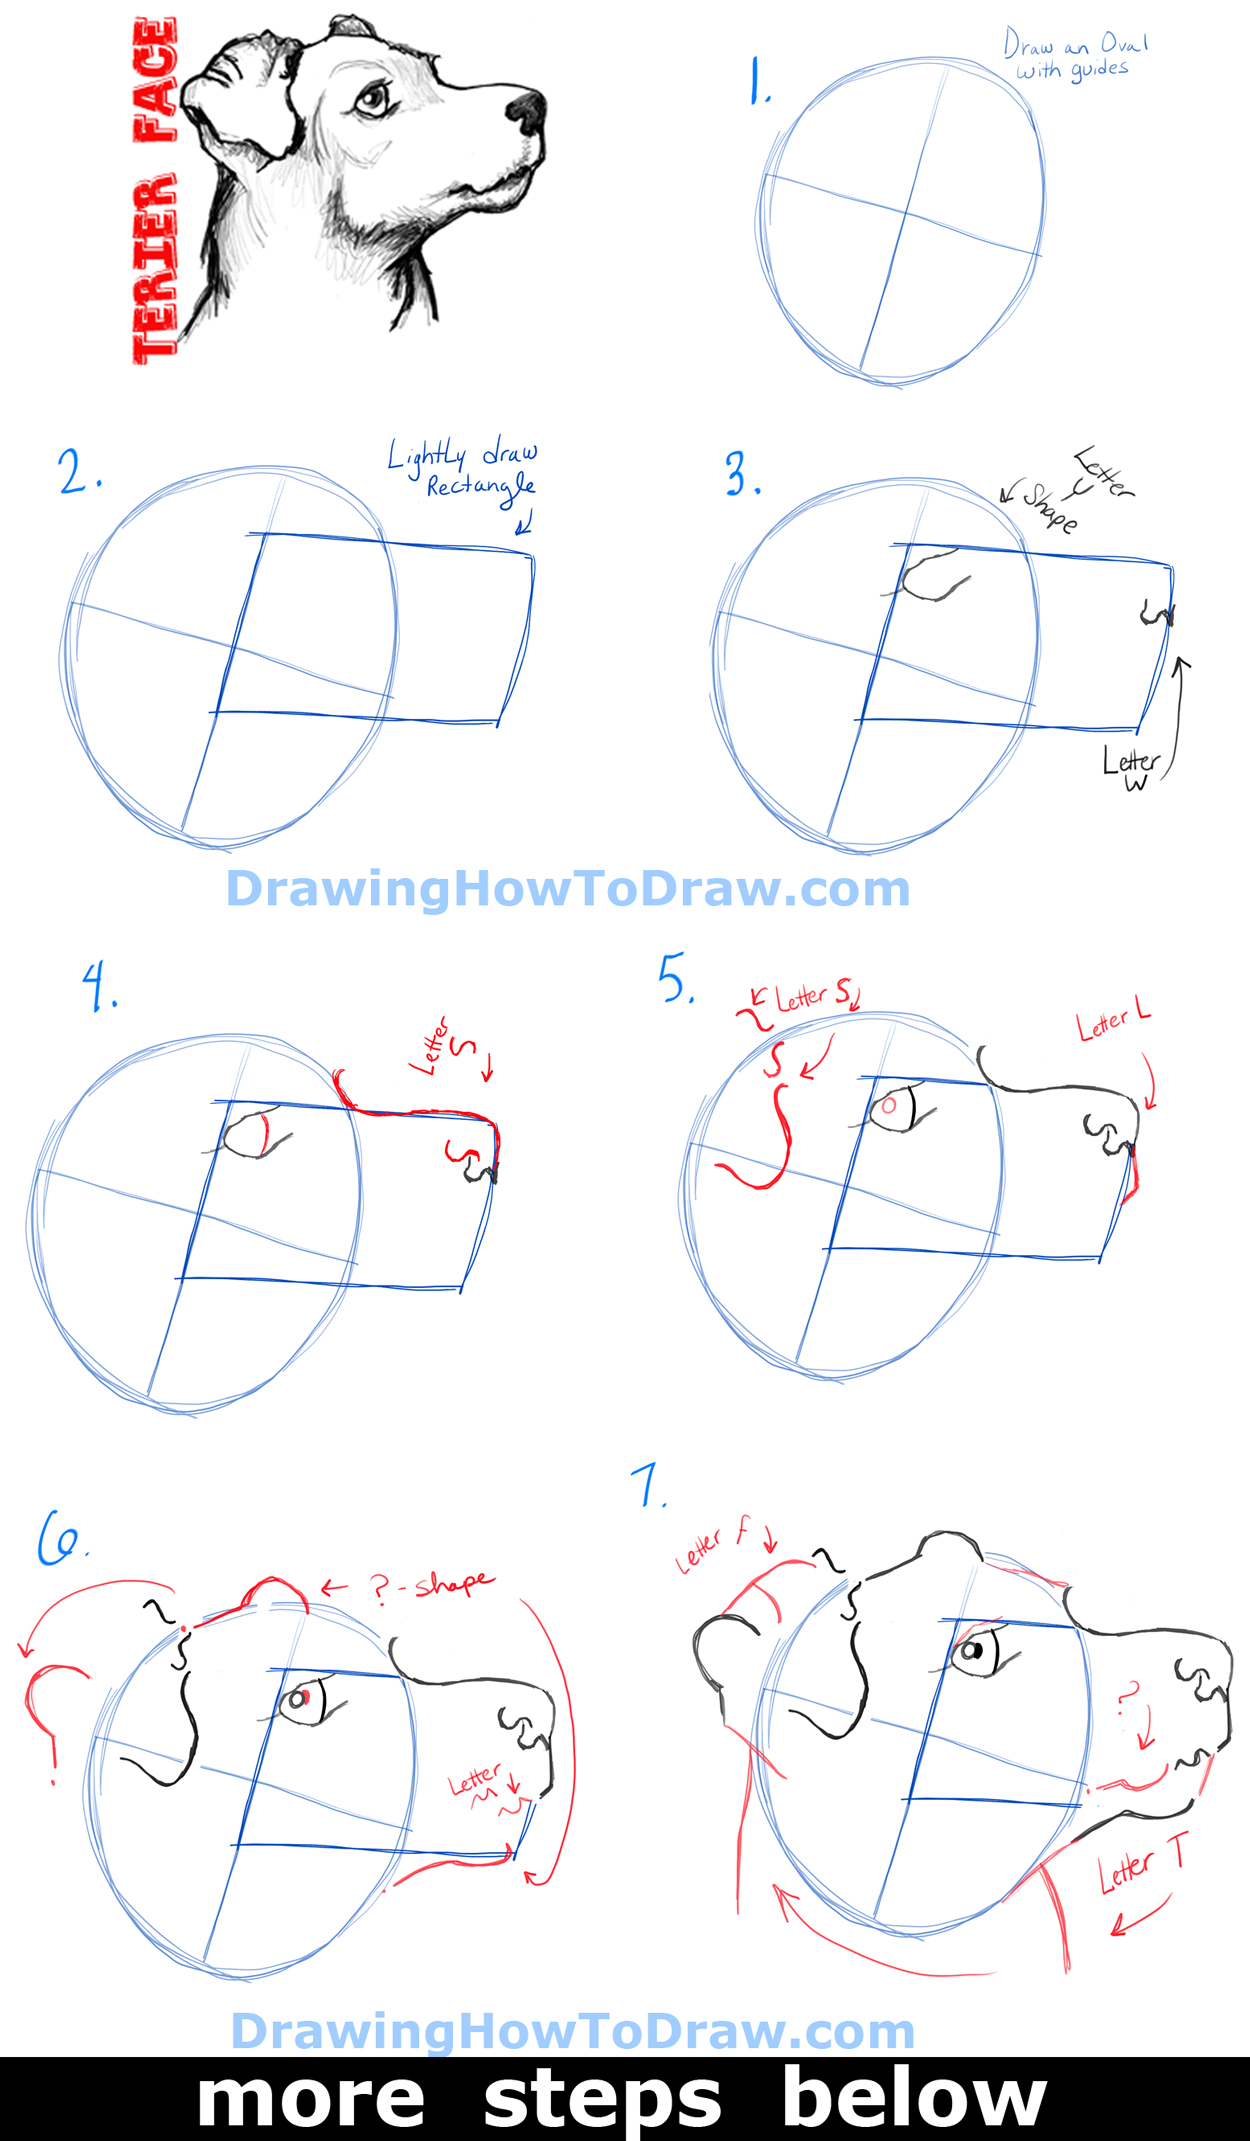 How To Draw A Terrier S Face Dog S Face With Easy Steps How To